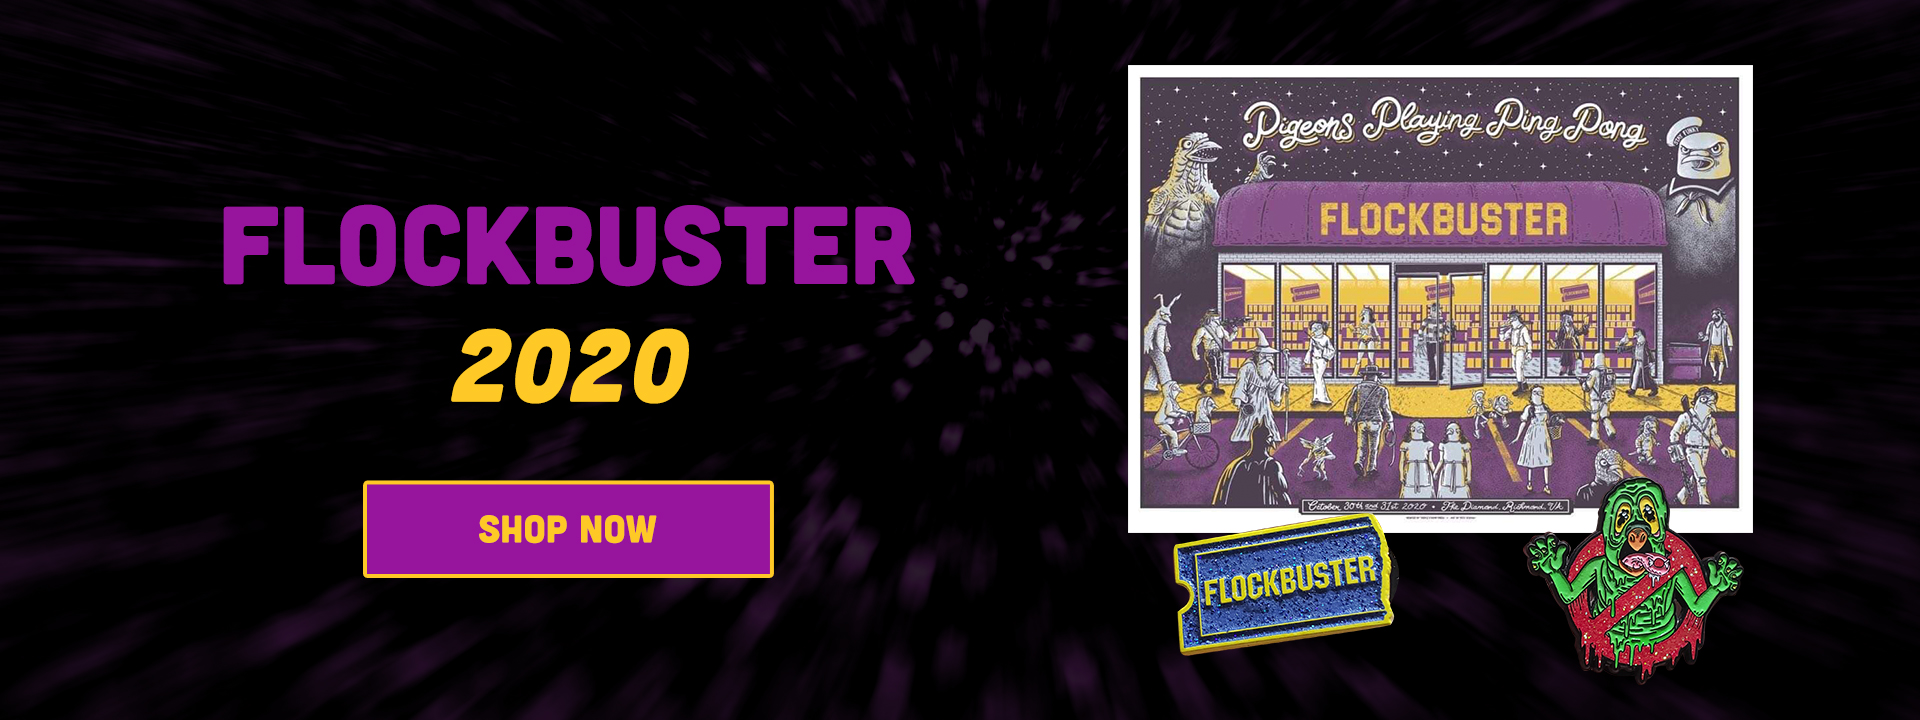 Flockbuster 2020 - New Merch - Pre-order Now